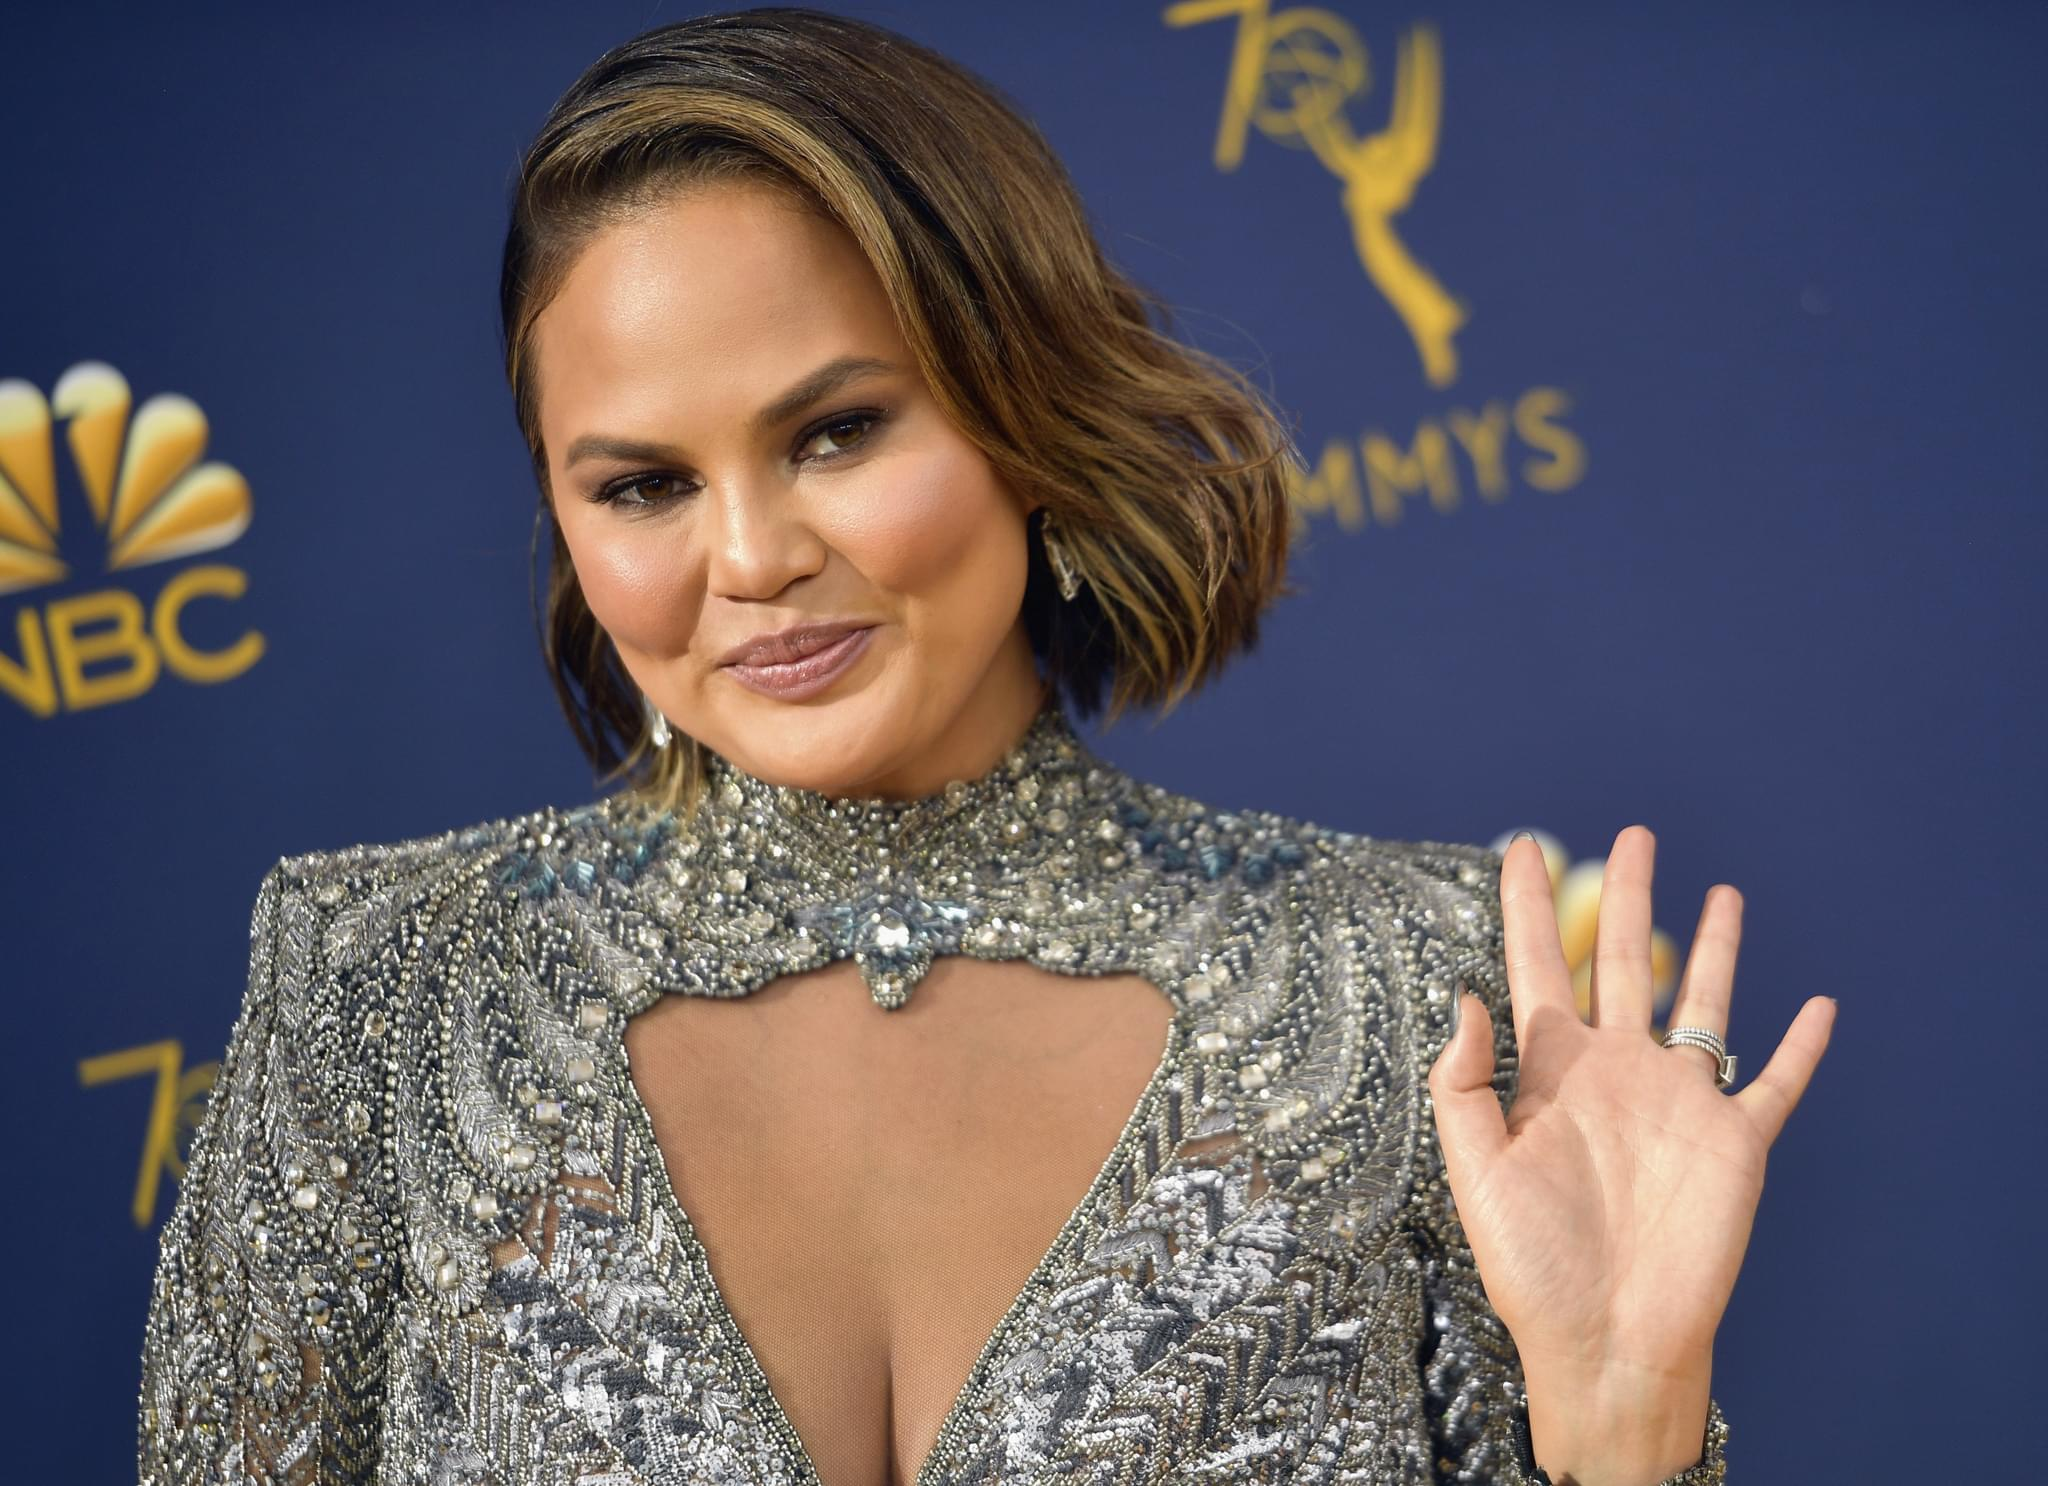 WATCH: Chrissy Teigen Accidentally Reveals Sex of Her and John Legend's 3rd Child